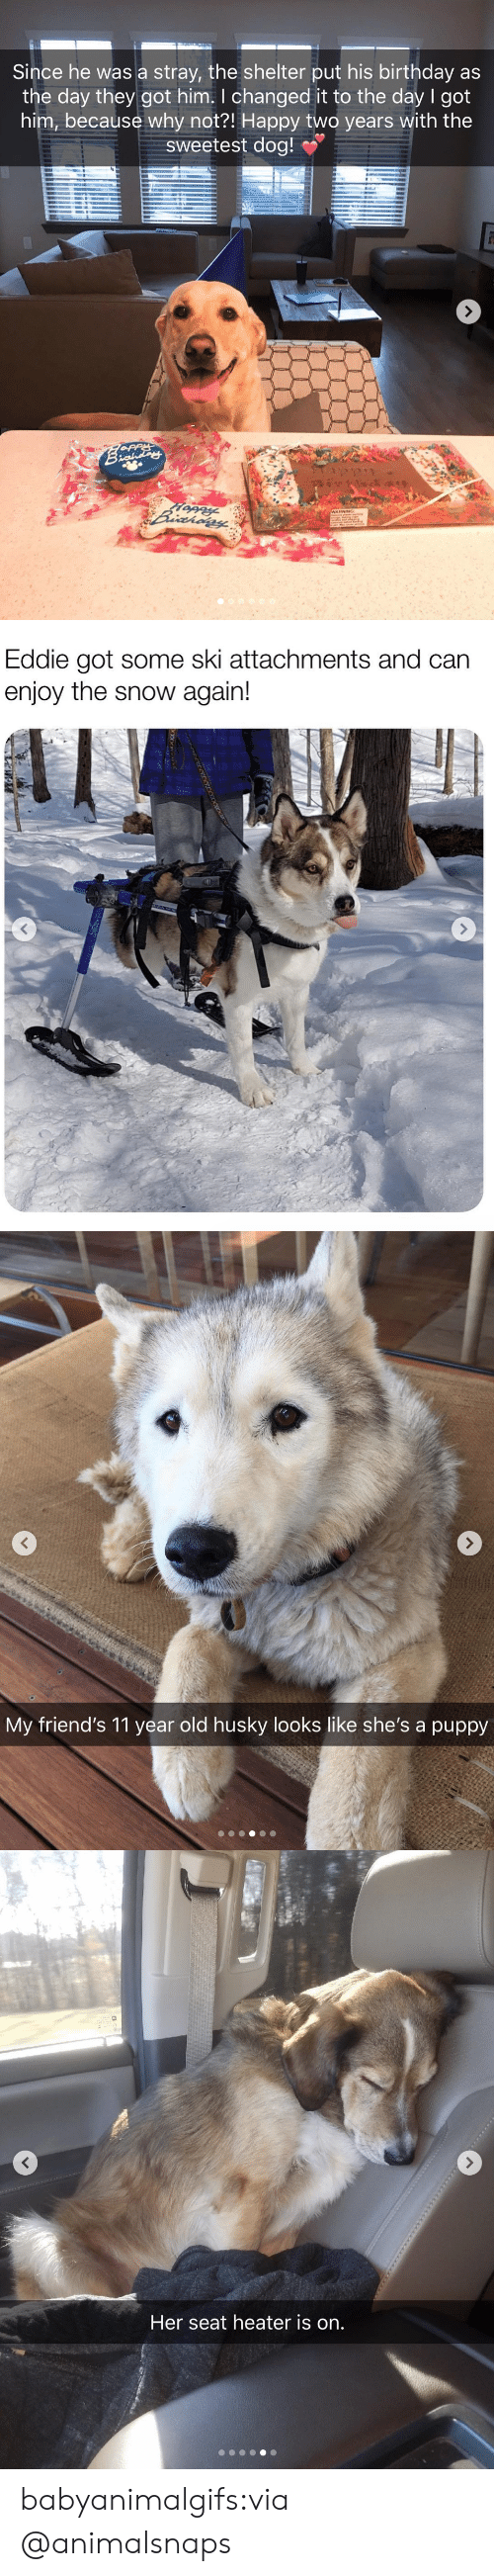 Birthday, Friends, and Tumblr: Since he was a stray, the shelter put his birthday as  the day they got him. I changed it to the day l got  him, because why not?! Happy two years with the  sweetest dog!   Eddie got some ski attachments and can  enjoy the snow again!   My friend's 11 year old husky looks like she's a puppy   Her seat heater is on. babyanimalgifs:via @animalsnaps